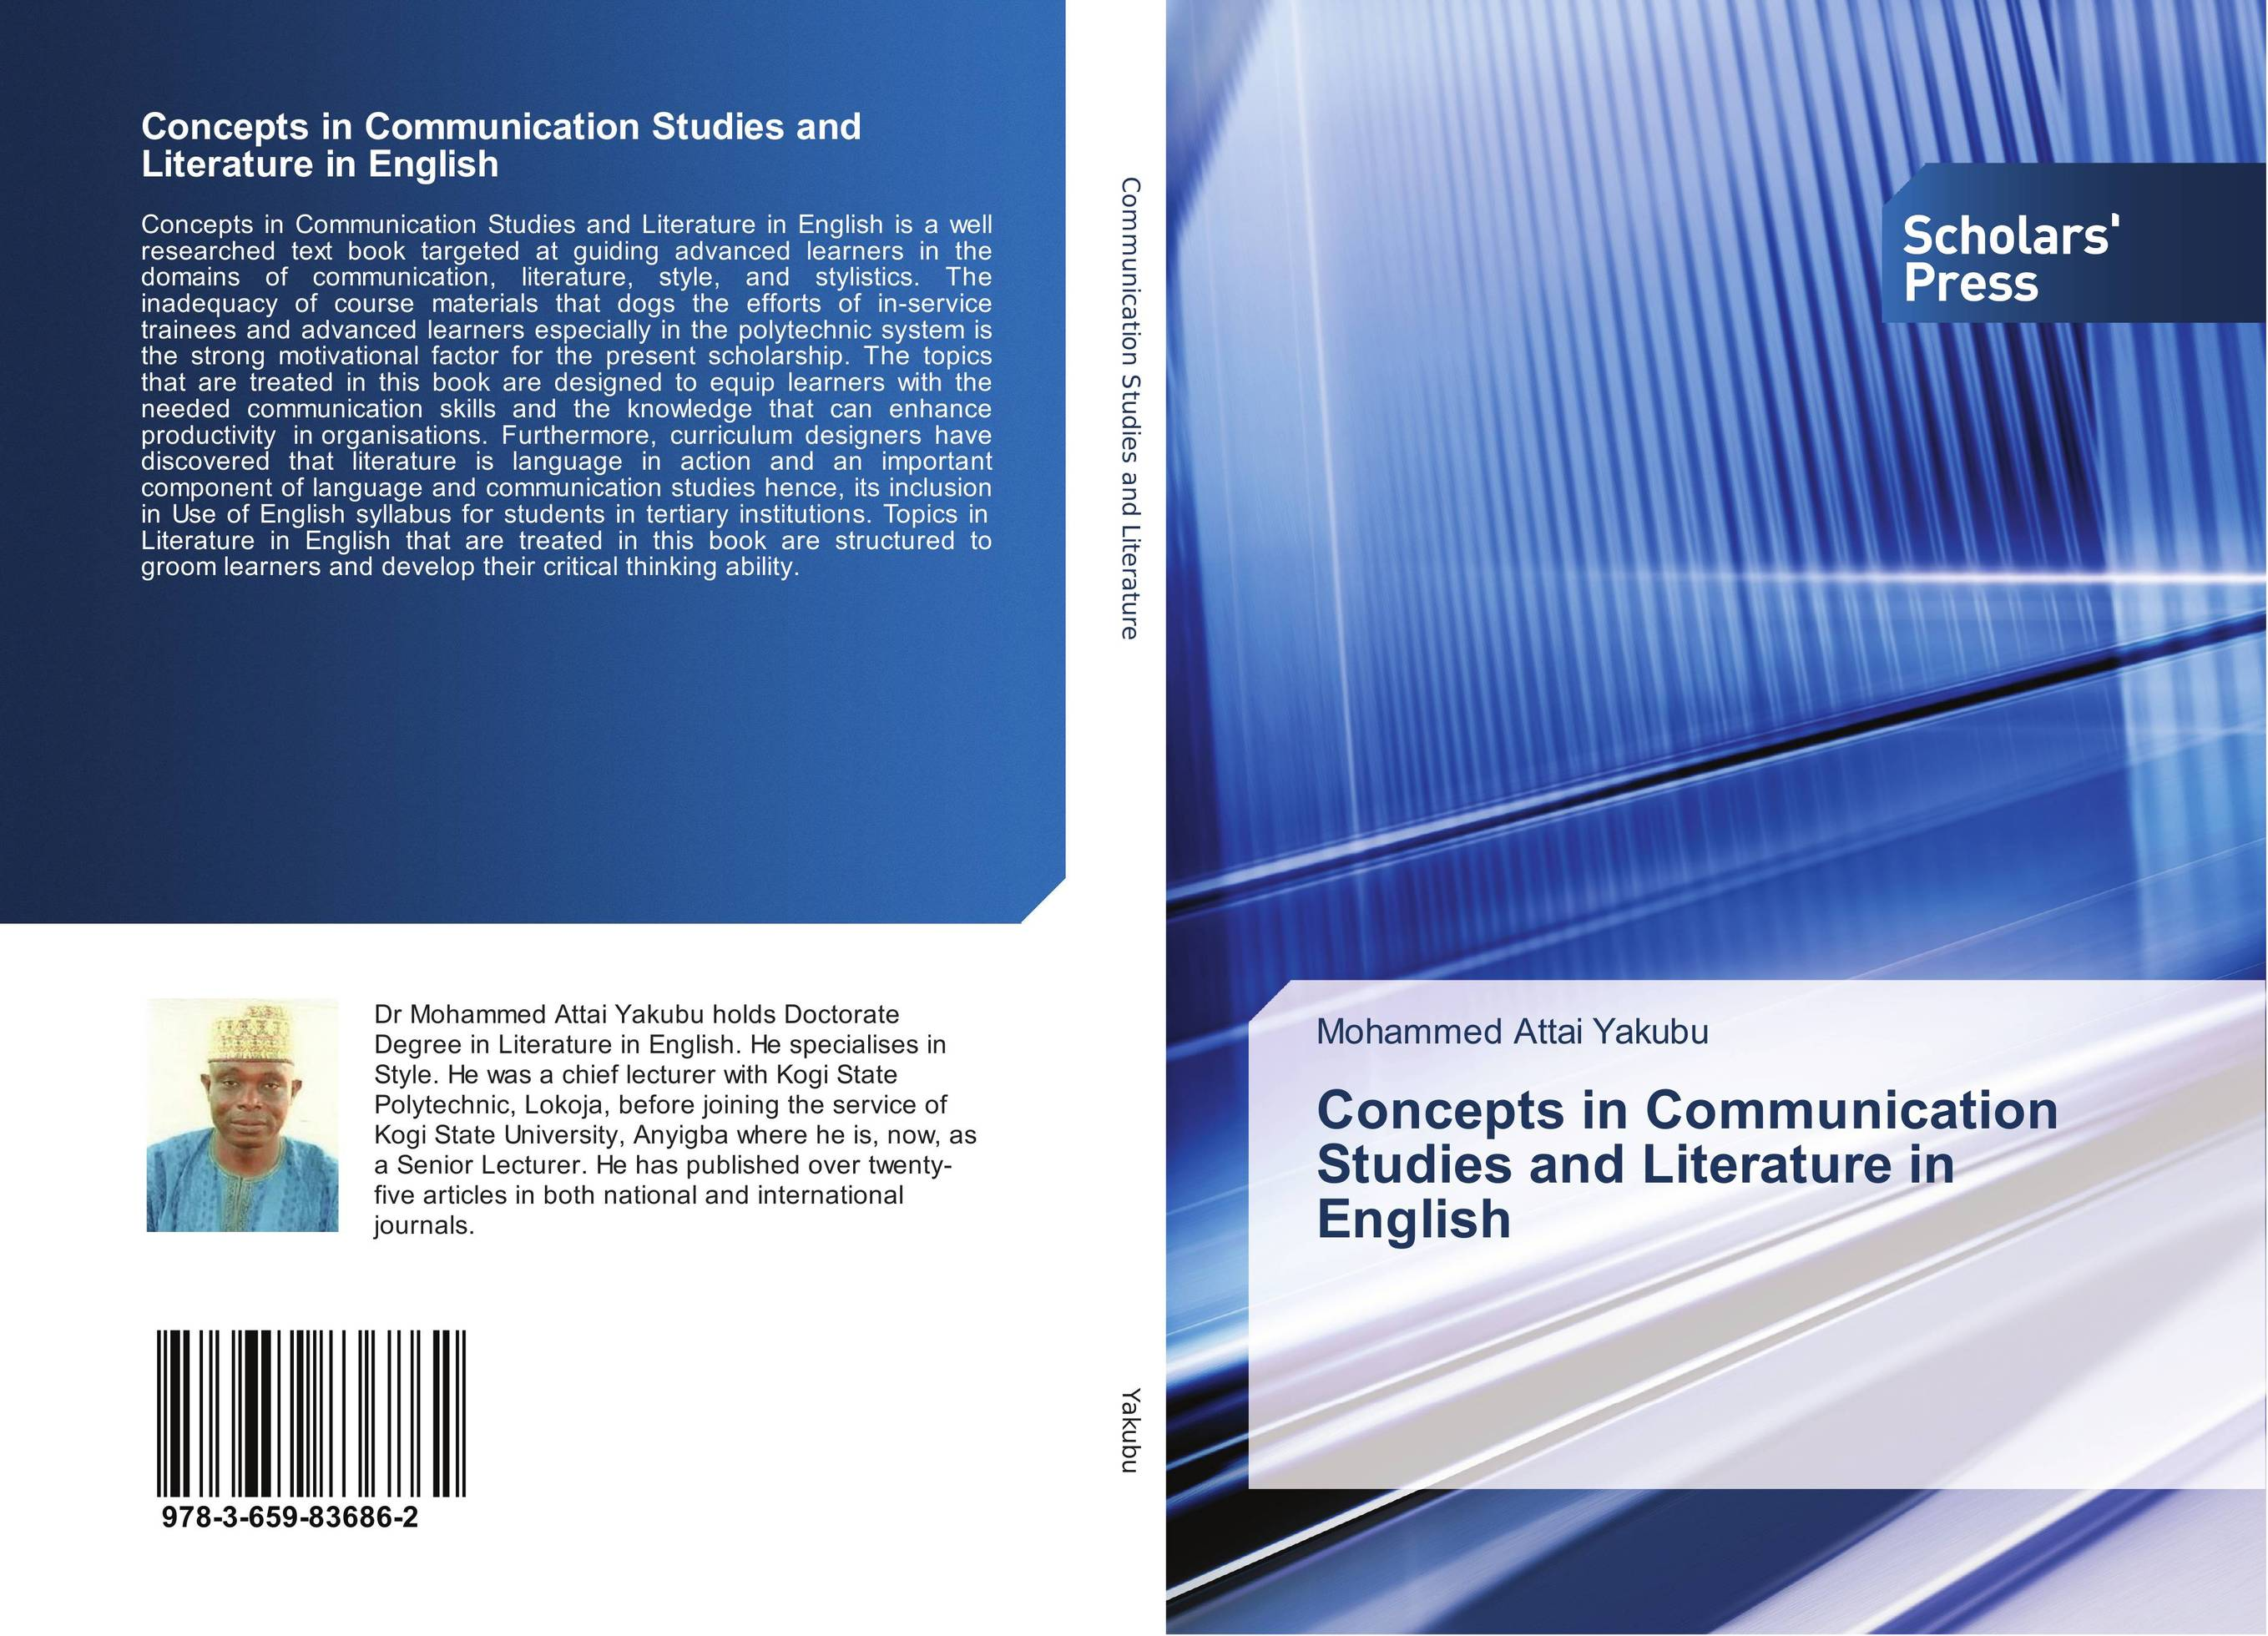 Concepts in Communication Studies and Literature in English studies in literature